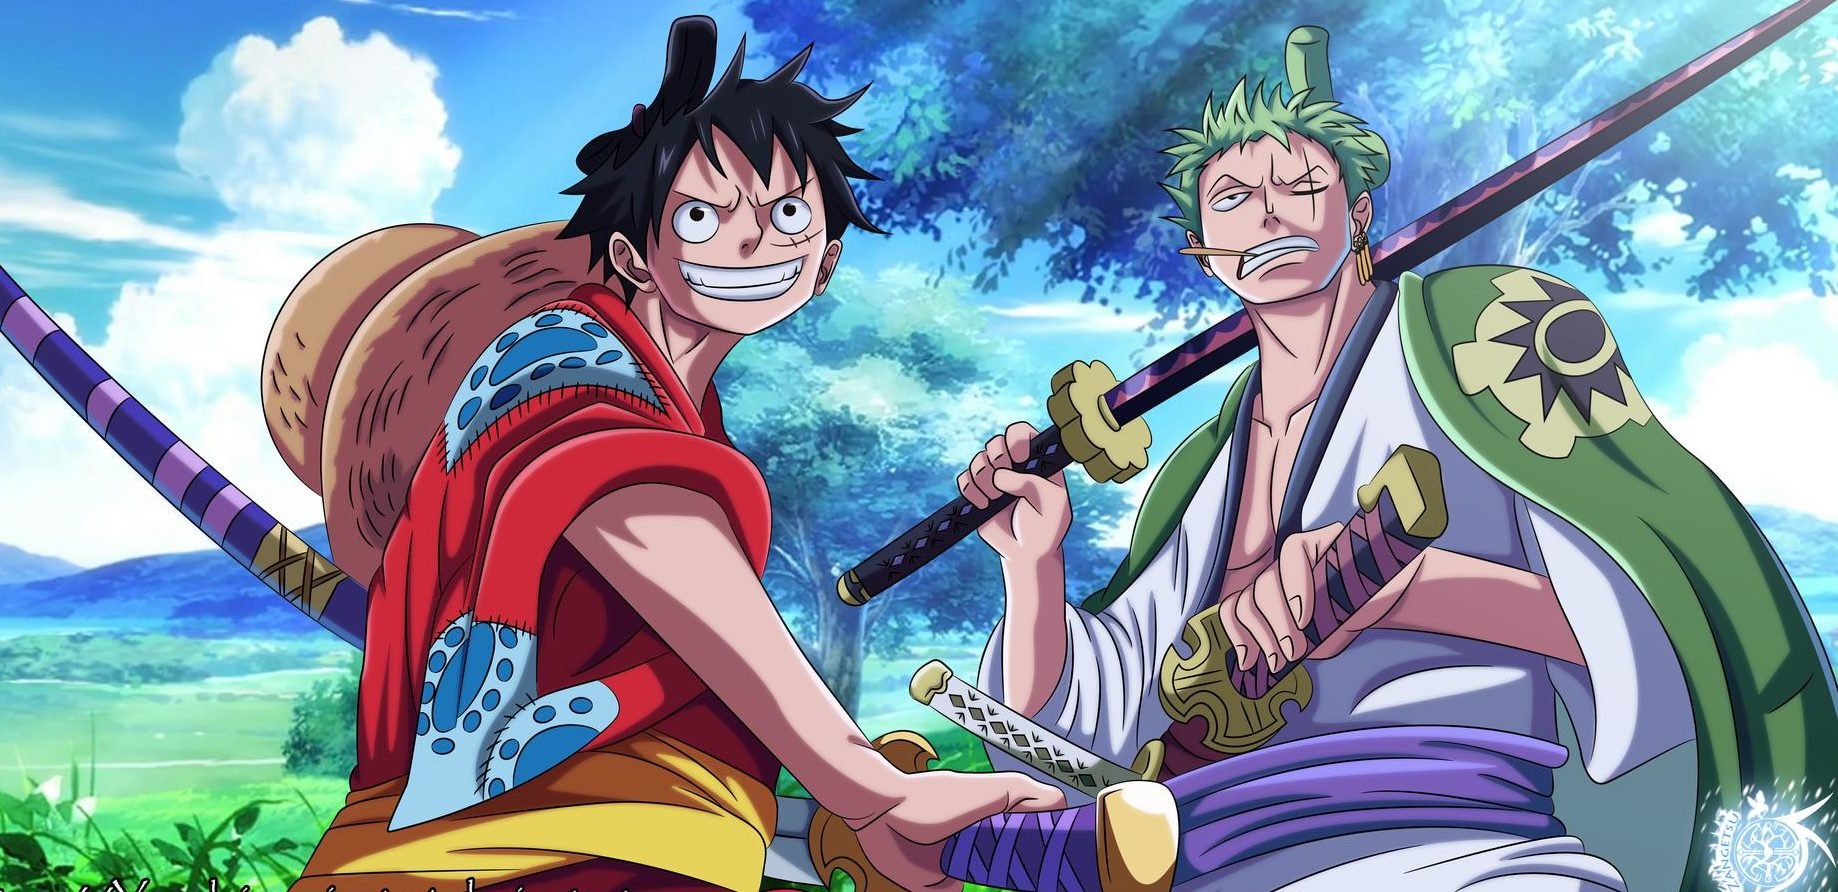 Release date for One Piece Episode 932 Spoilers alert, And everything need to know.